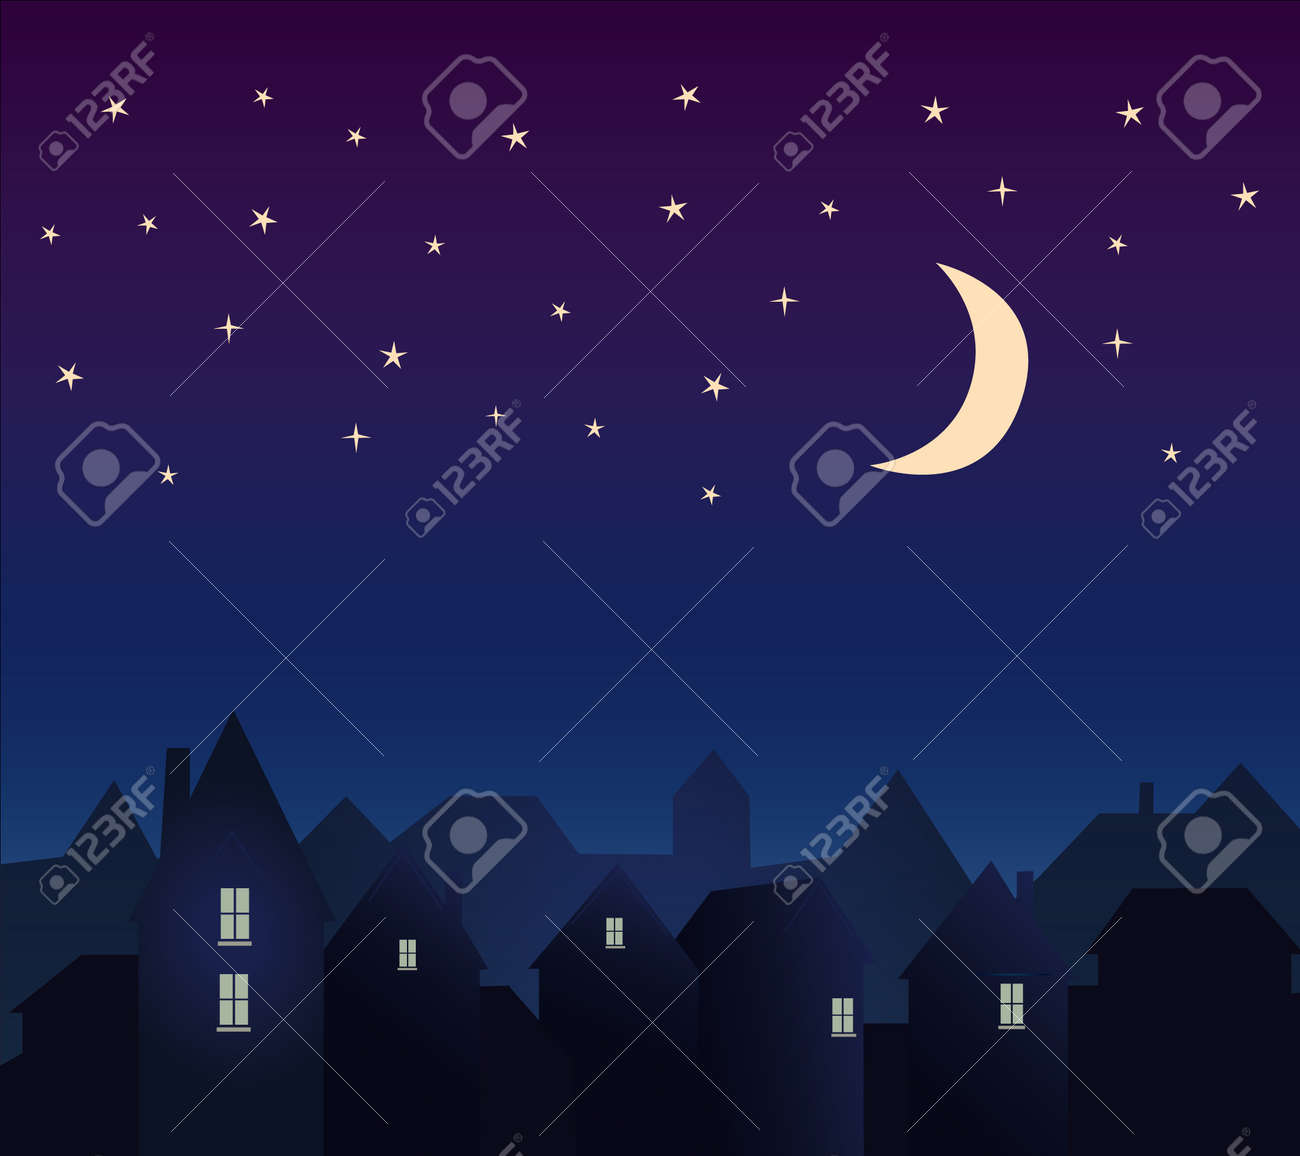 Silhouette of the city and night sky with stars and moon - 170746984